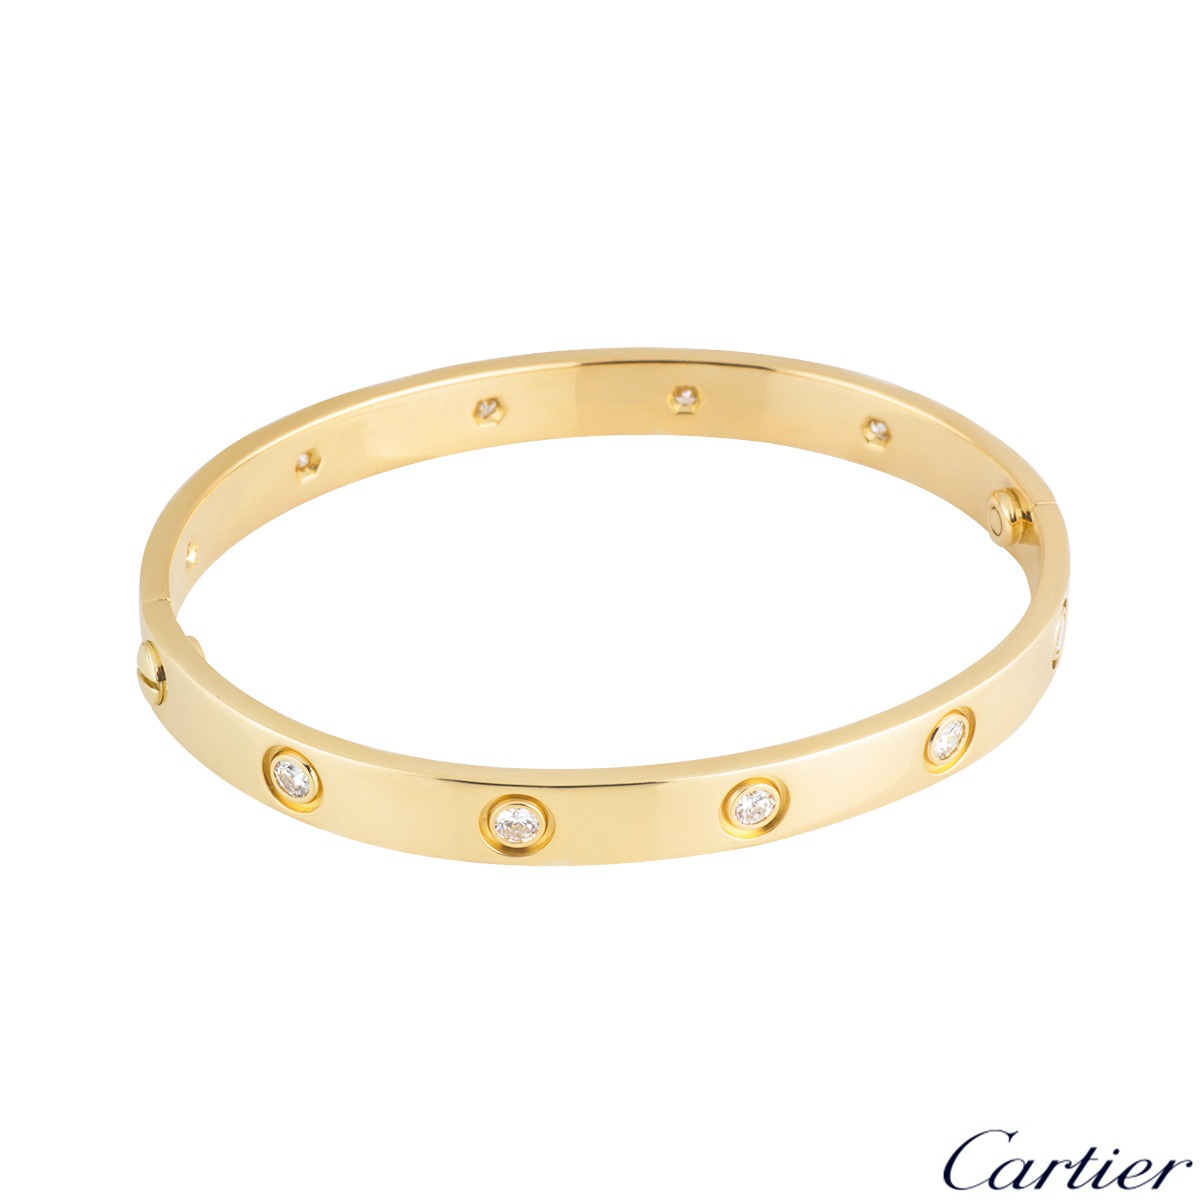 Cartier Yellow Gold Full Diamond Love Bracelet Size 18 B6040518